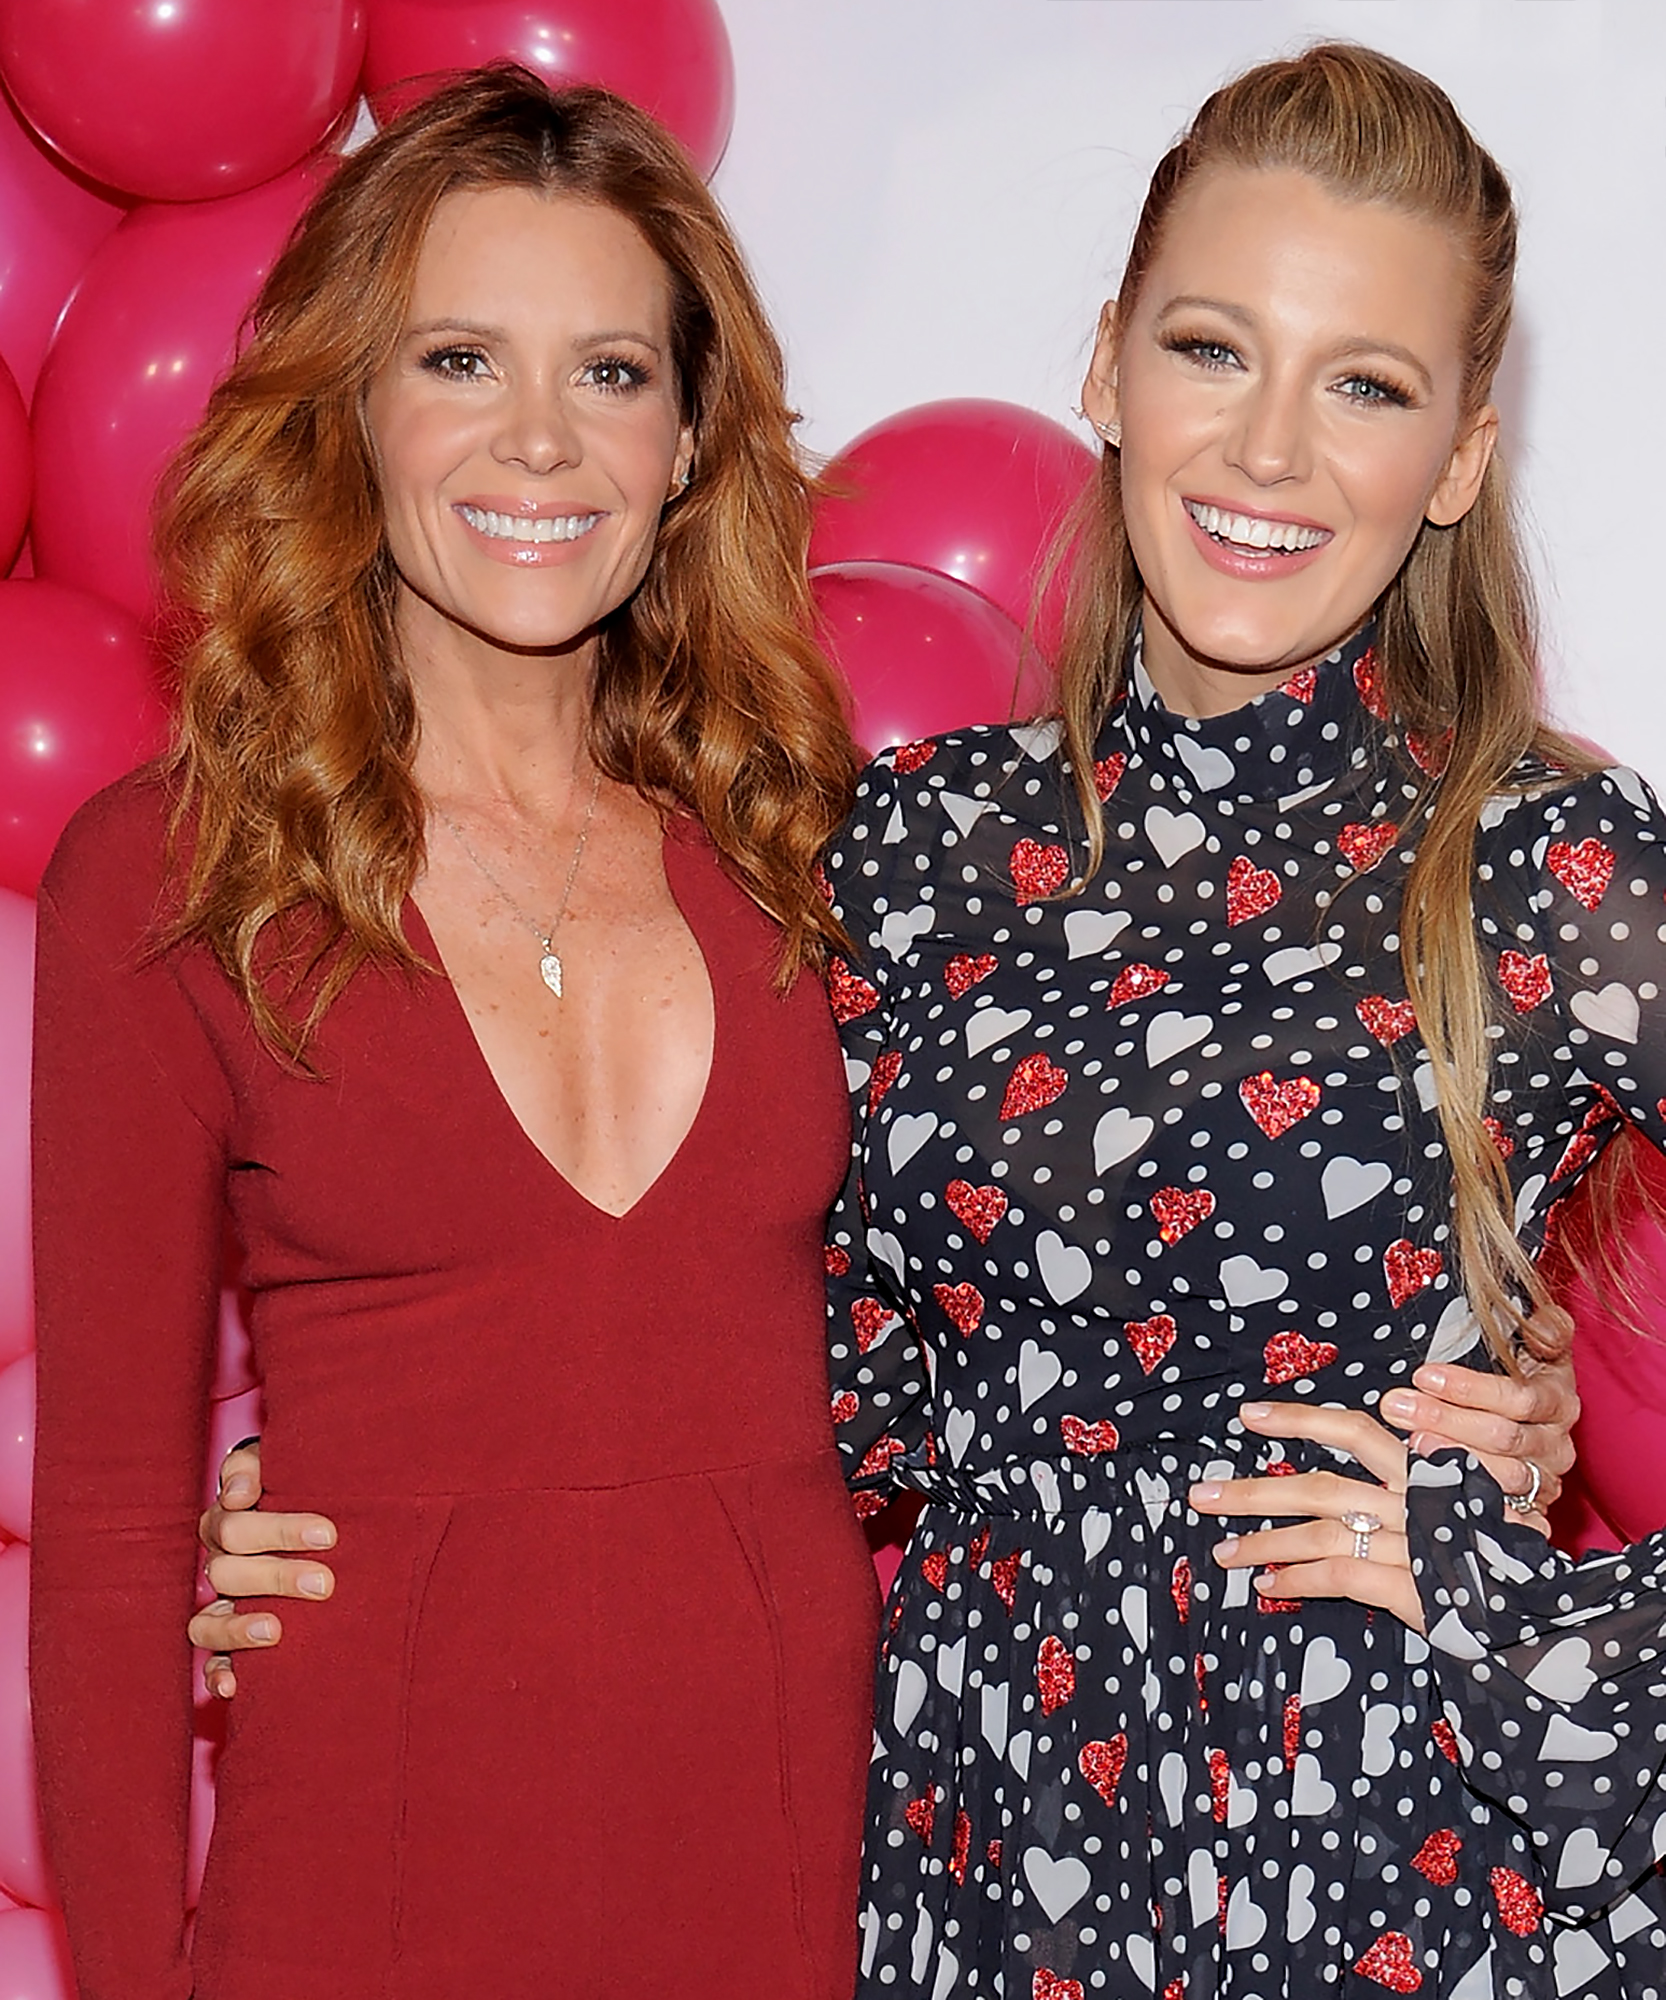 Blake Lively & Robyn Lively - LEAD